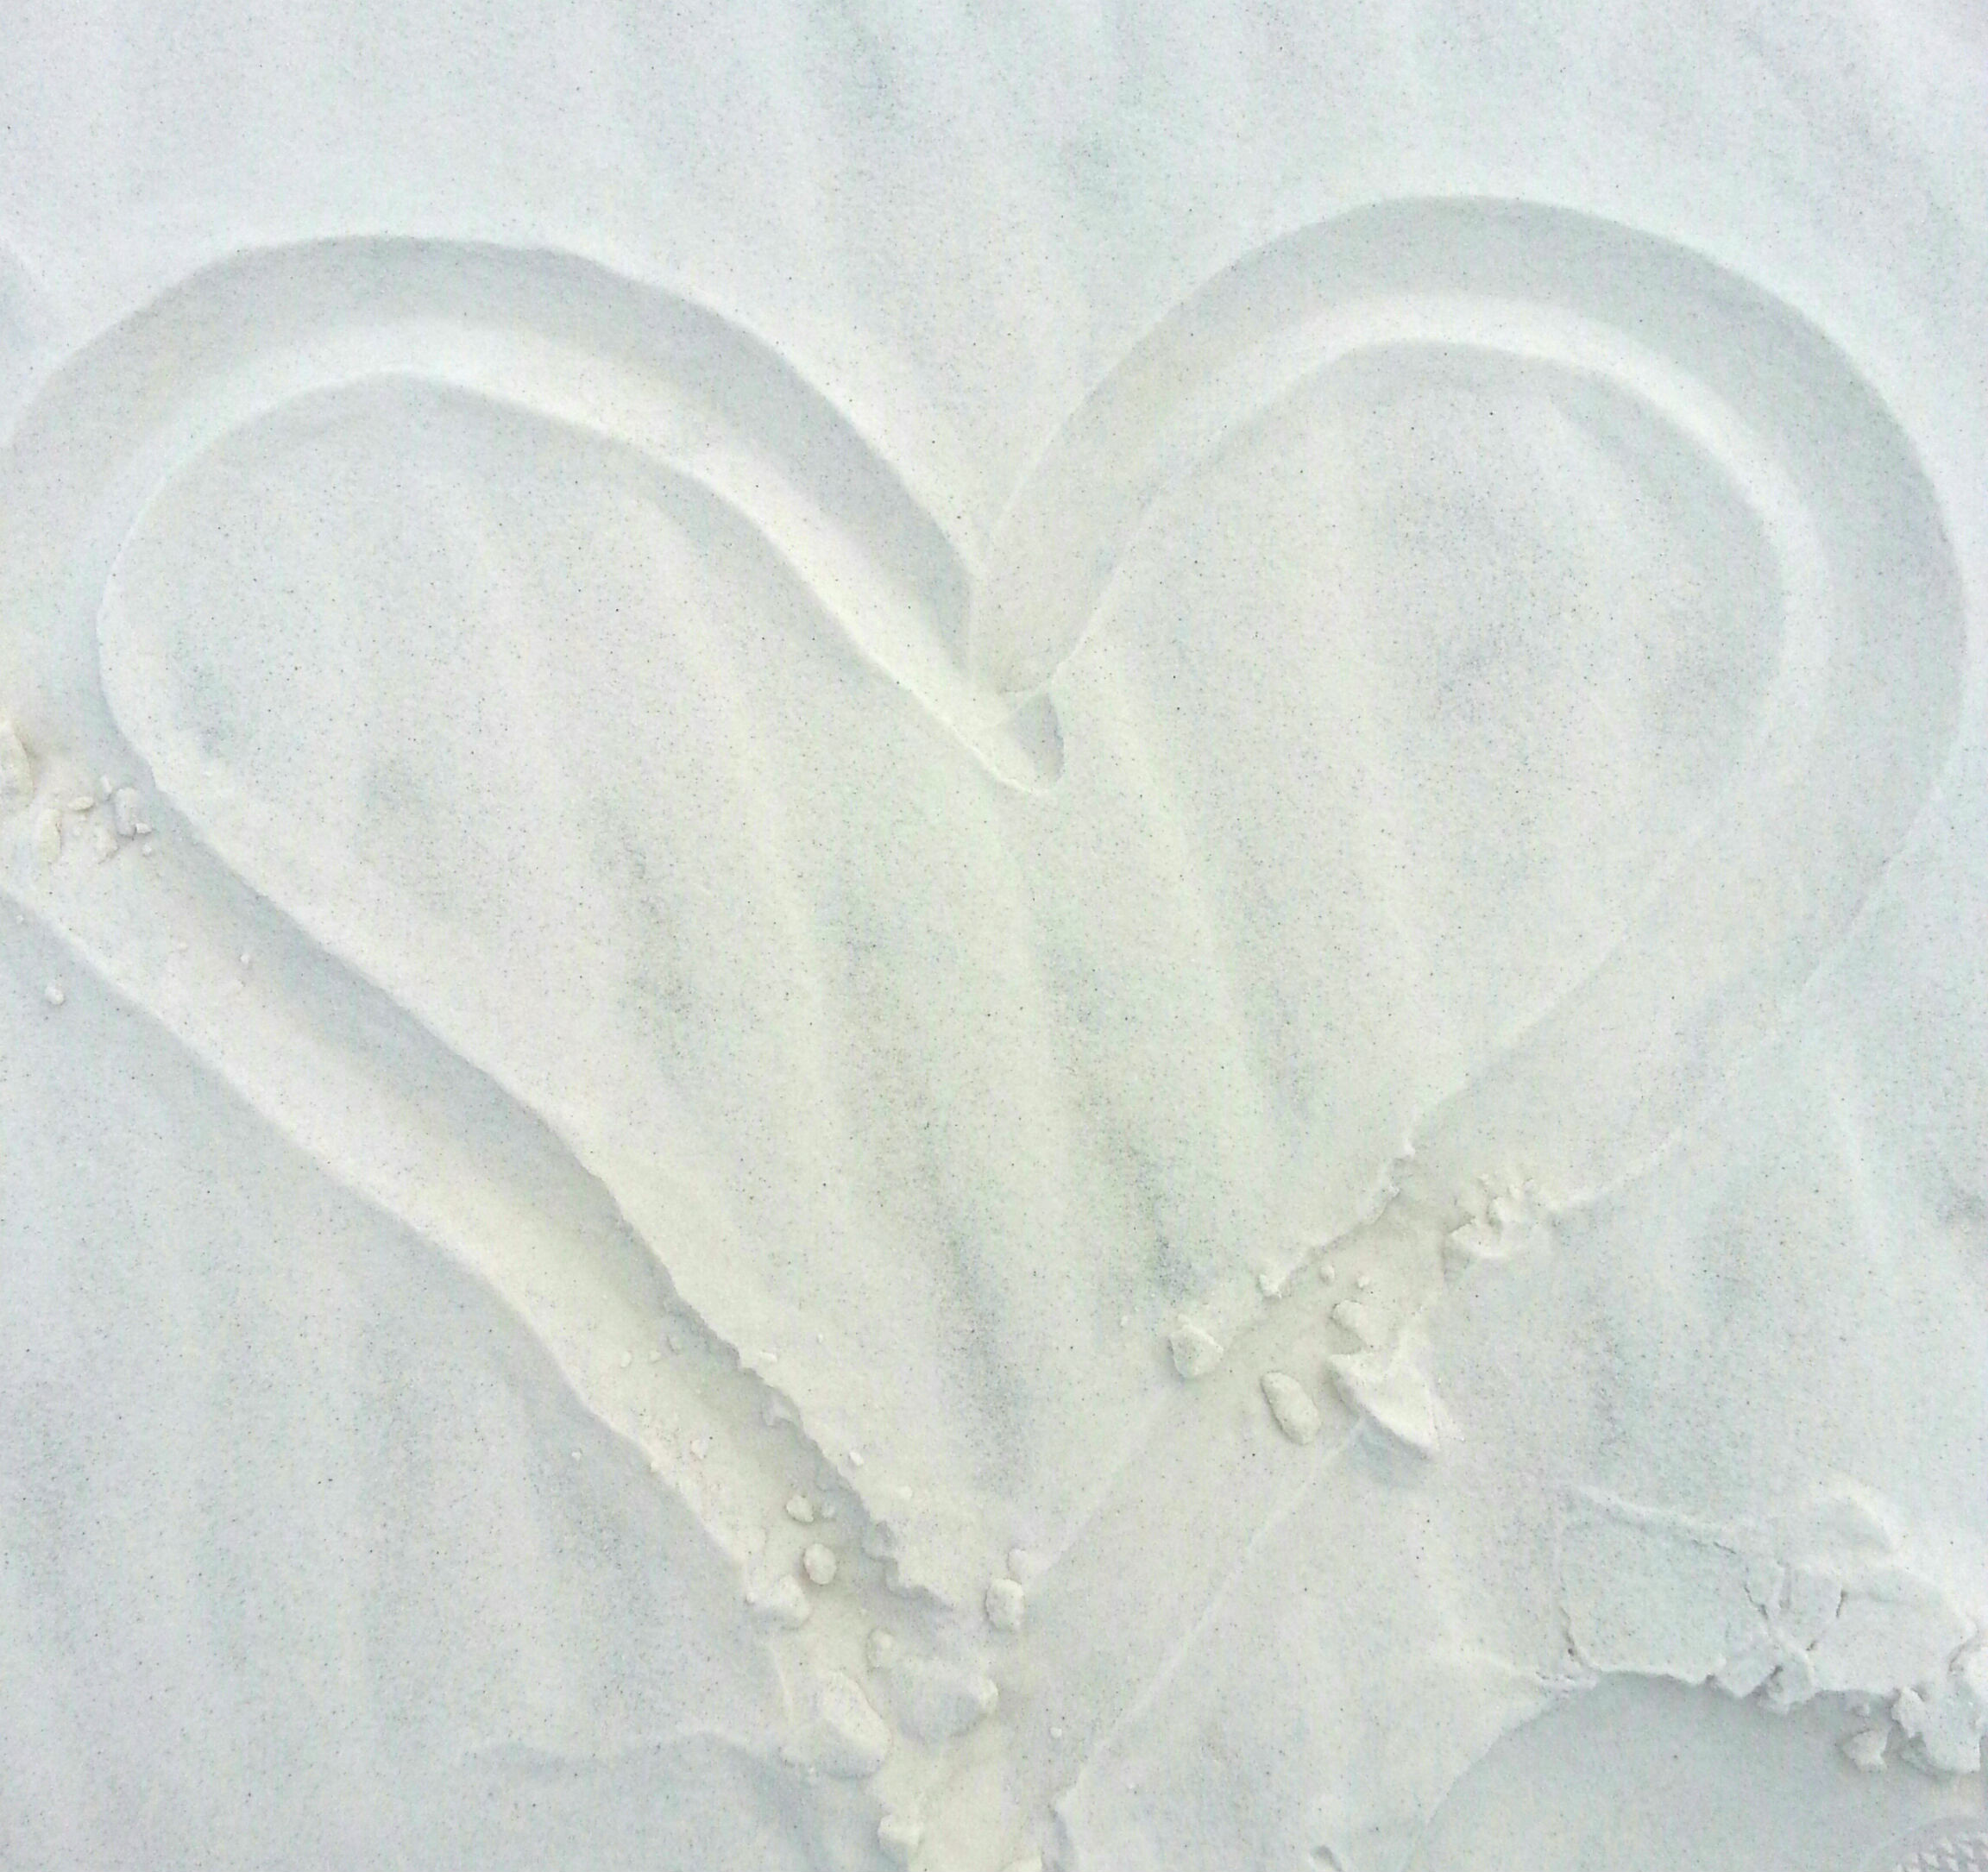 Our Heart in the white sand.